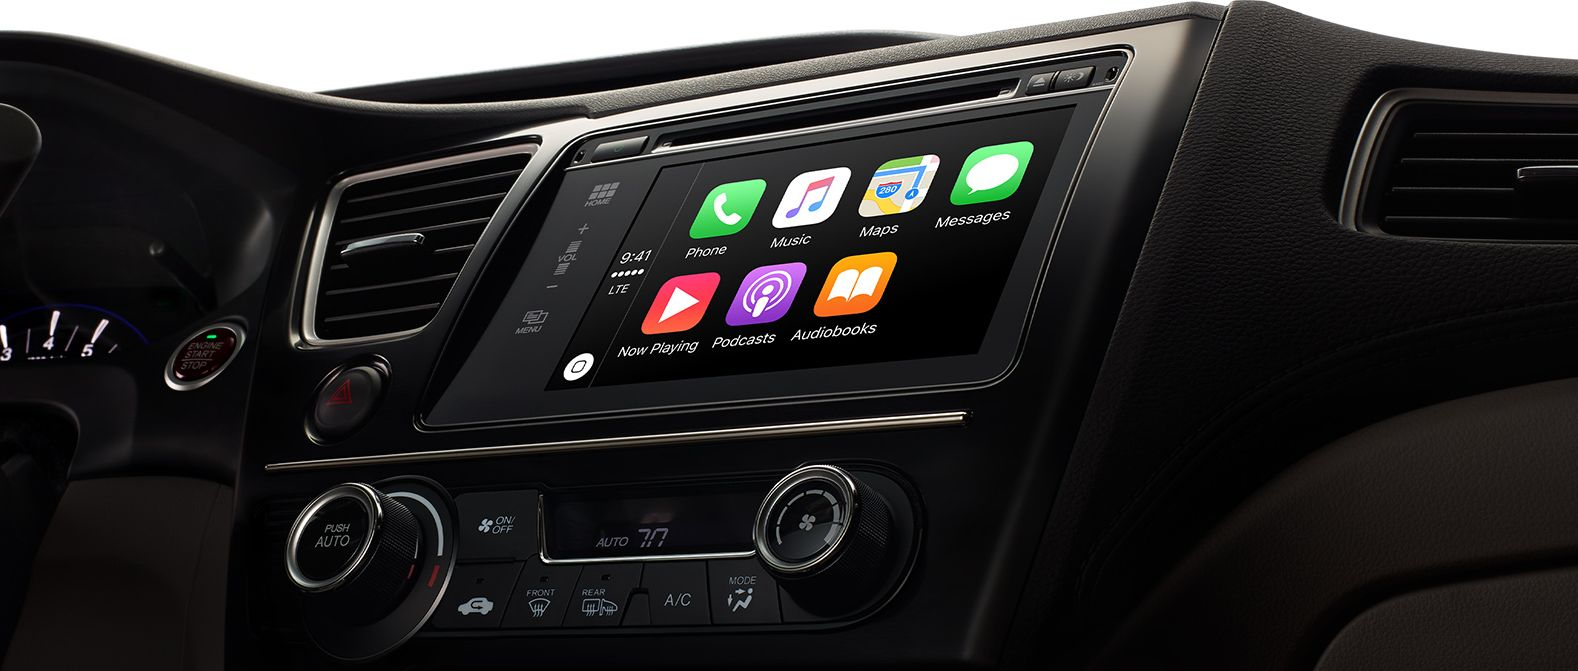 apple-carplay-large